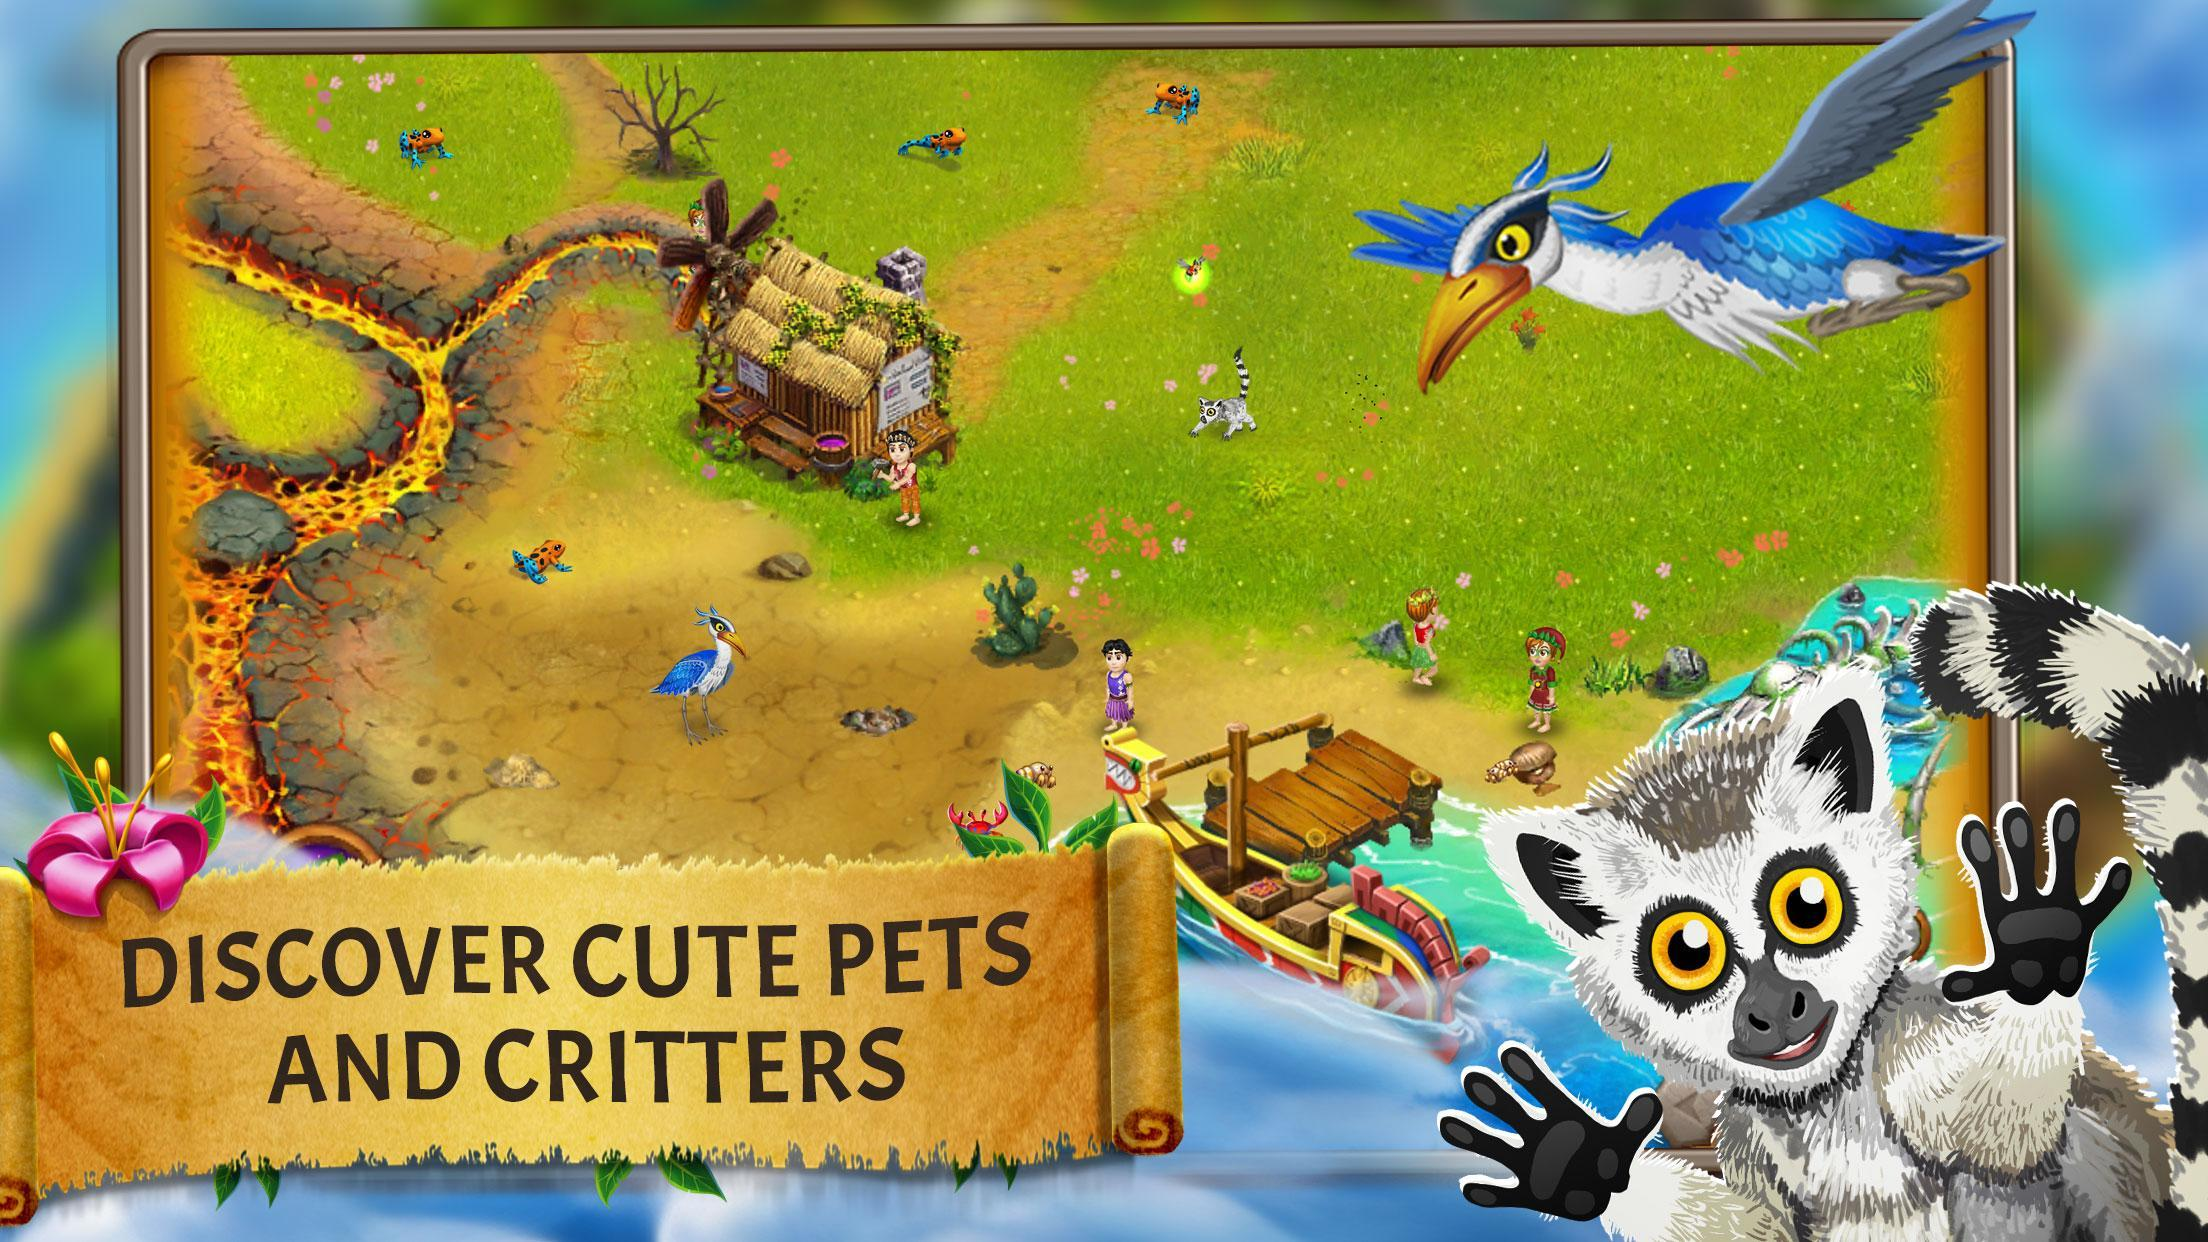 Virtual villagers 4 free for android apk download.